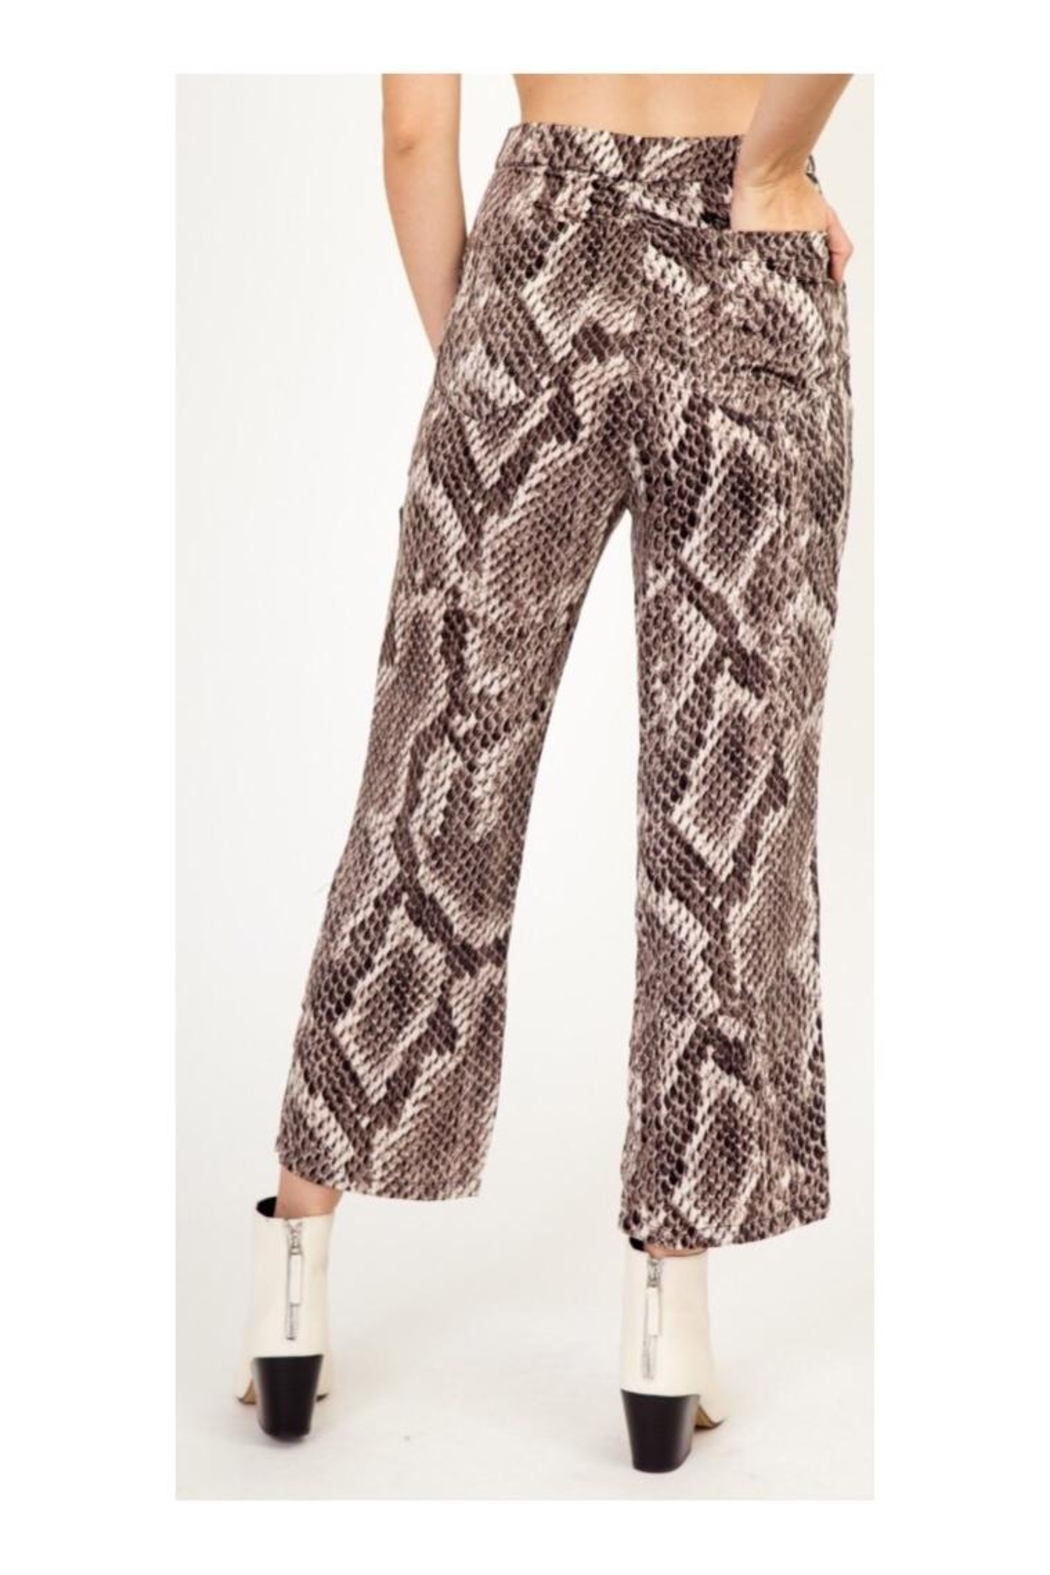 Polly & Esther Snake Print Pants - Side Cropped Image